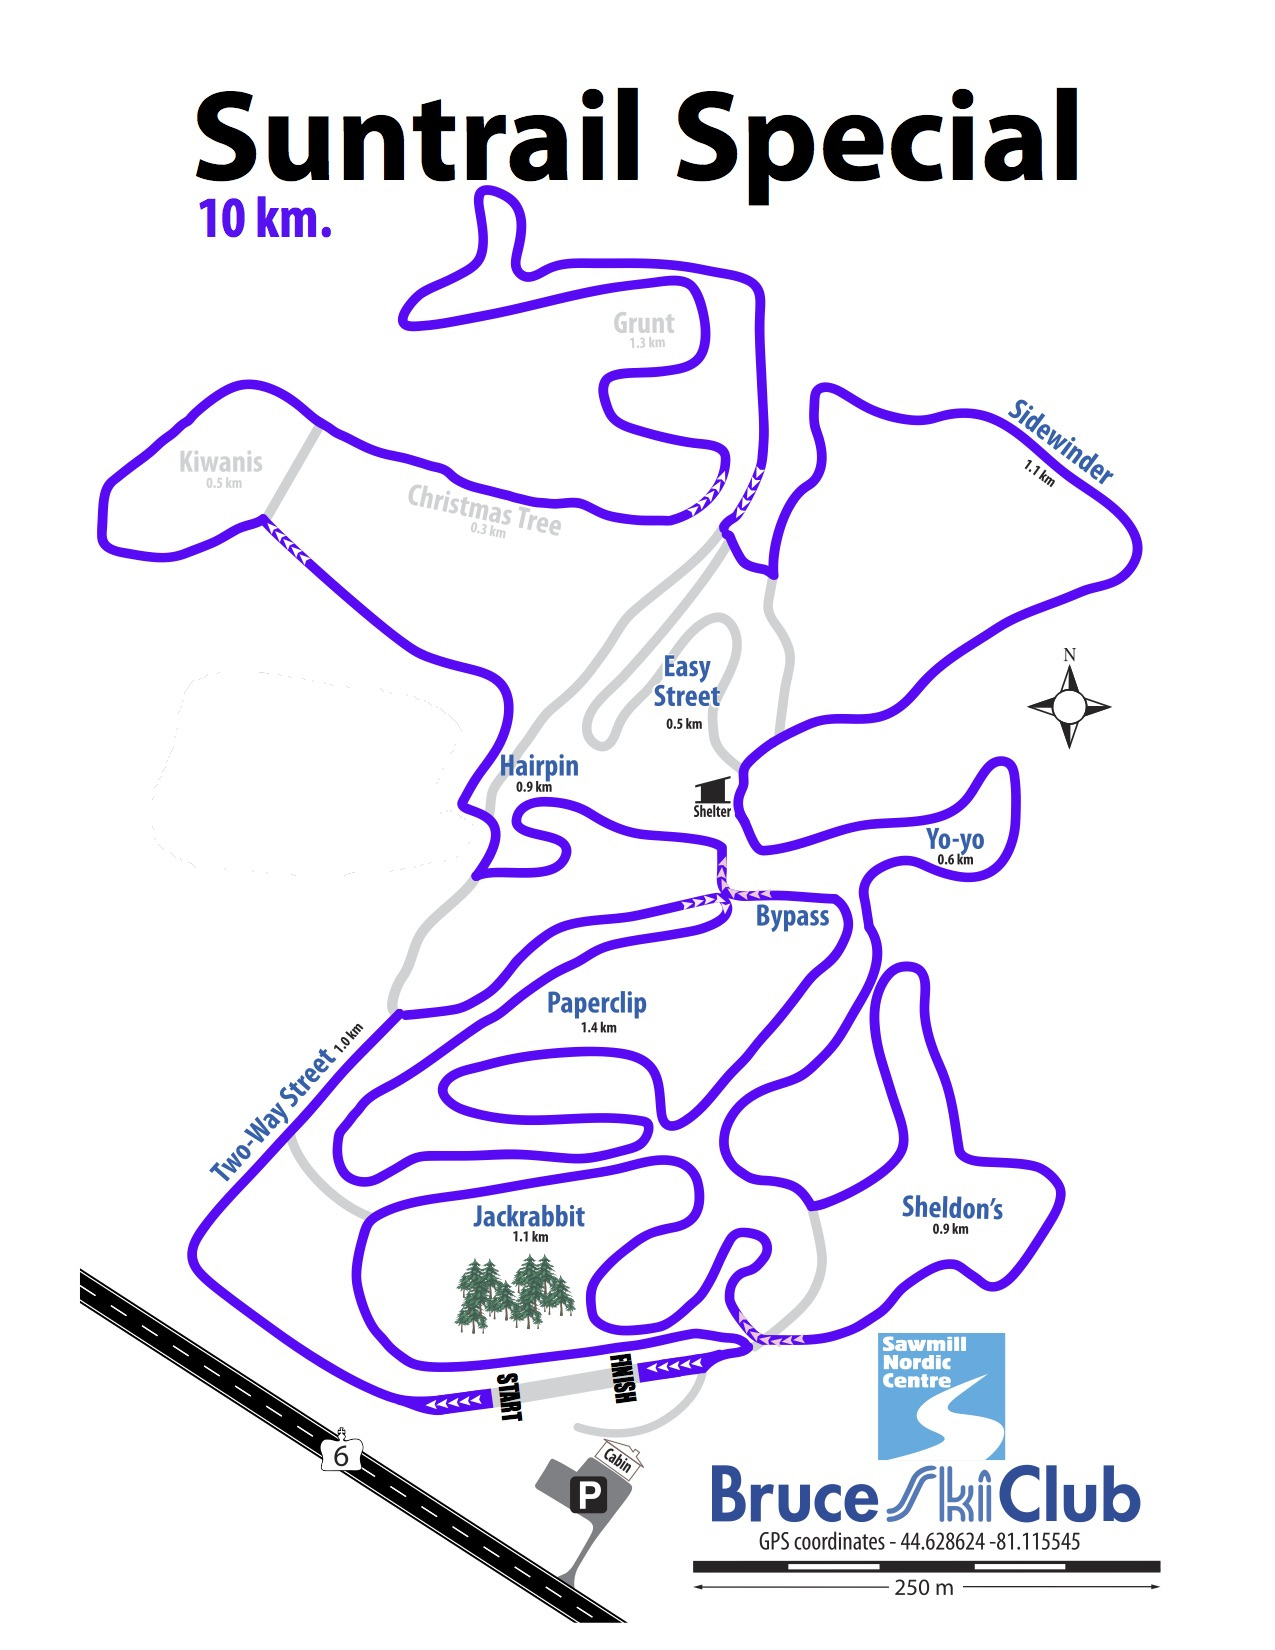 2019 Suntrail Special Cross-Country Ski Race Map – 10 km